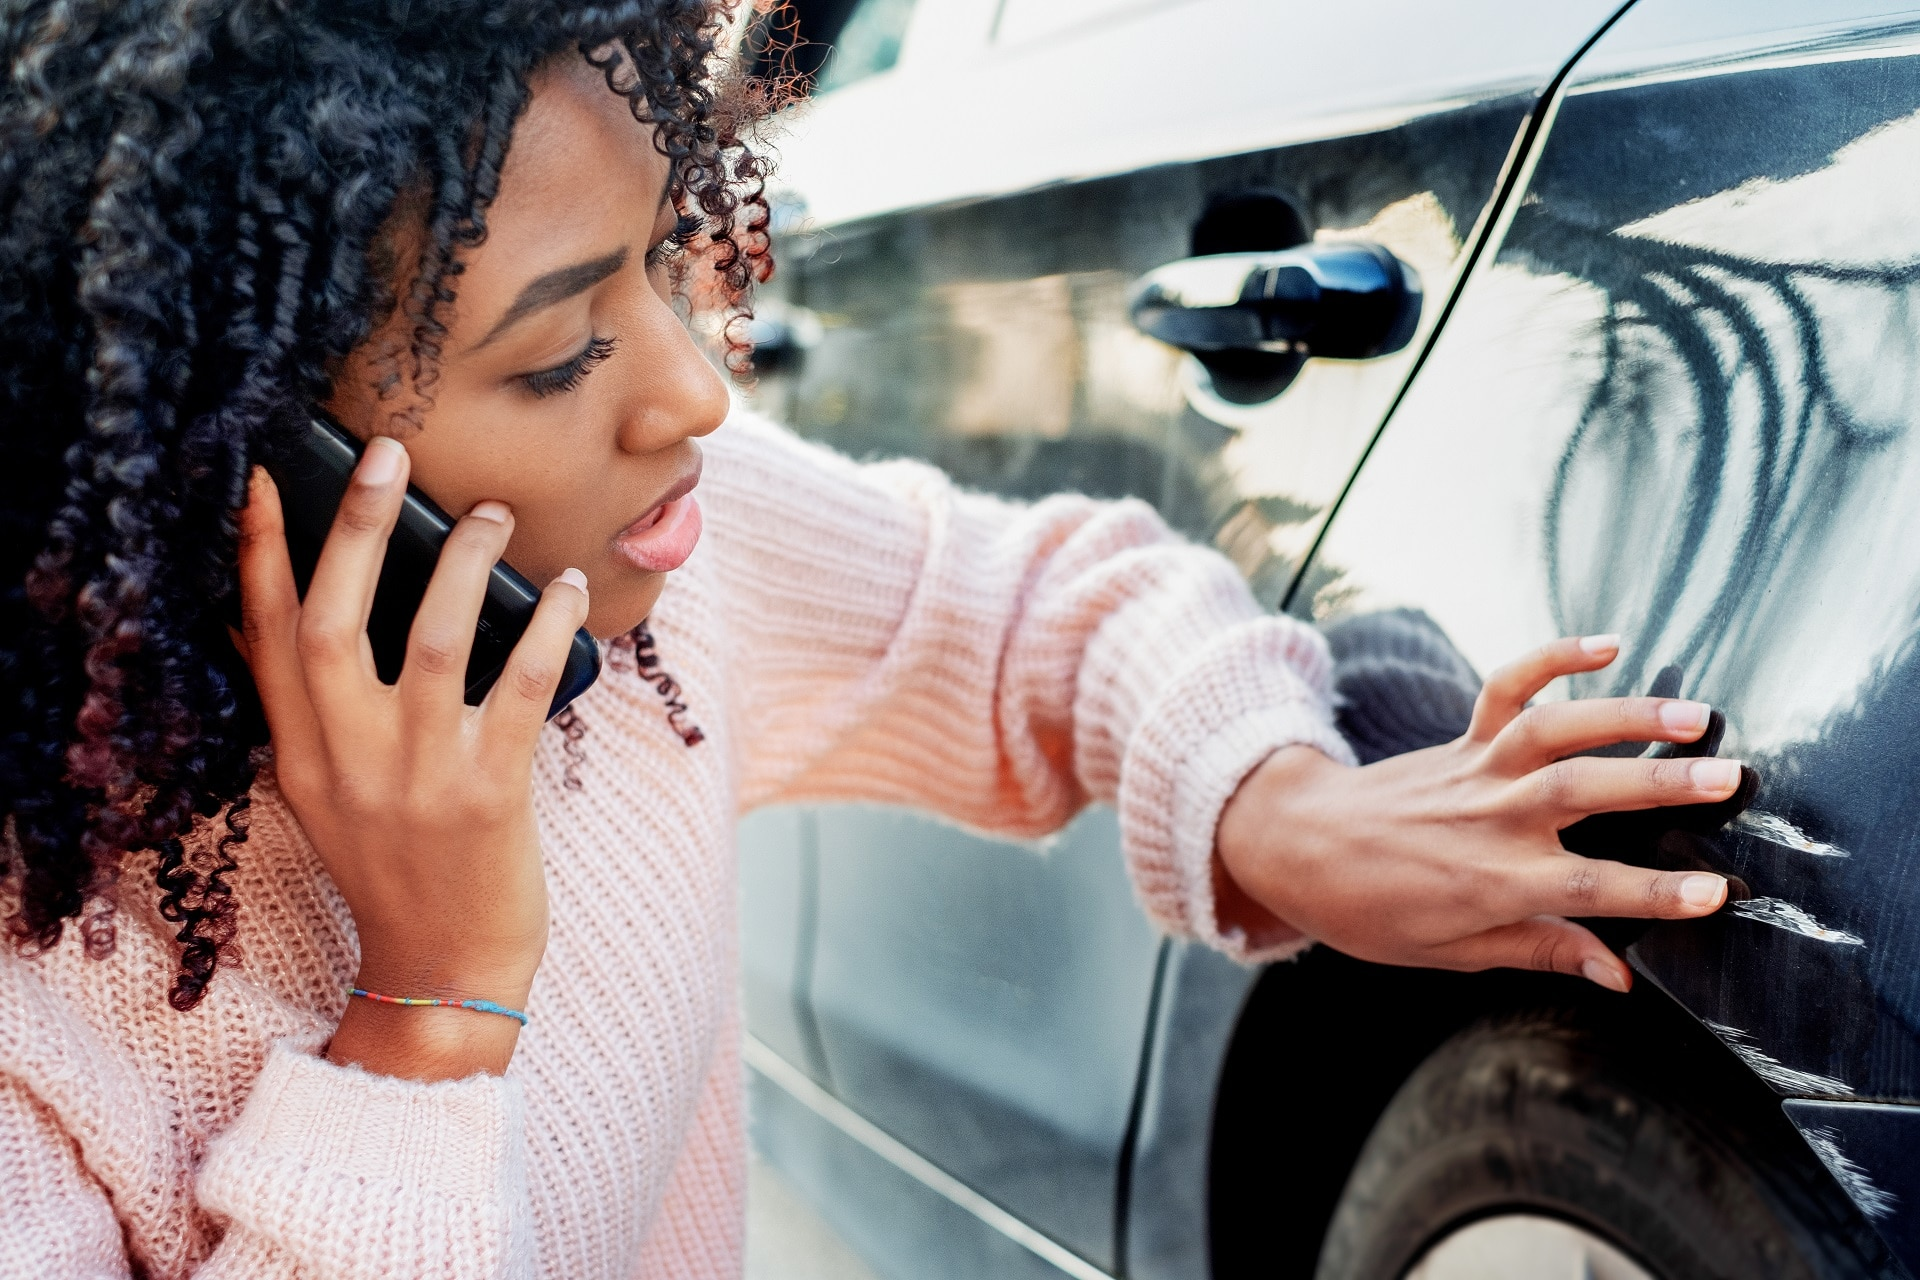 Tips On Speaking To Insurance Companies After An Auto Accident